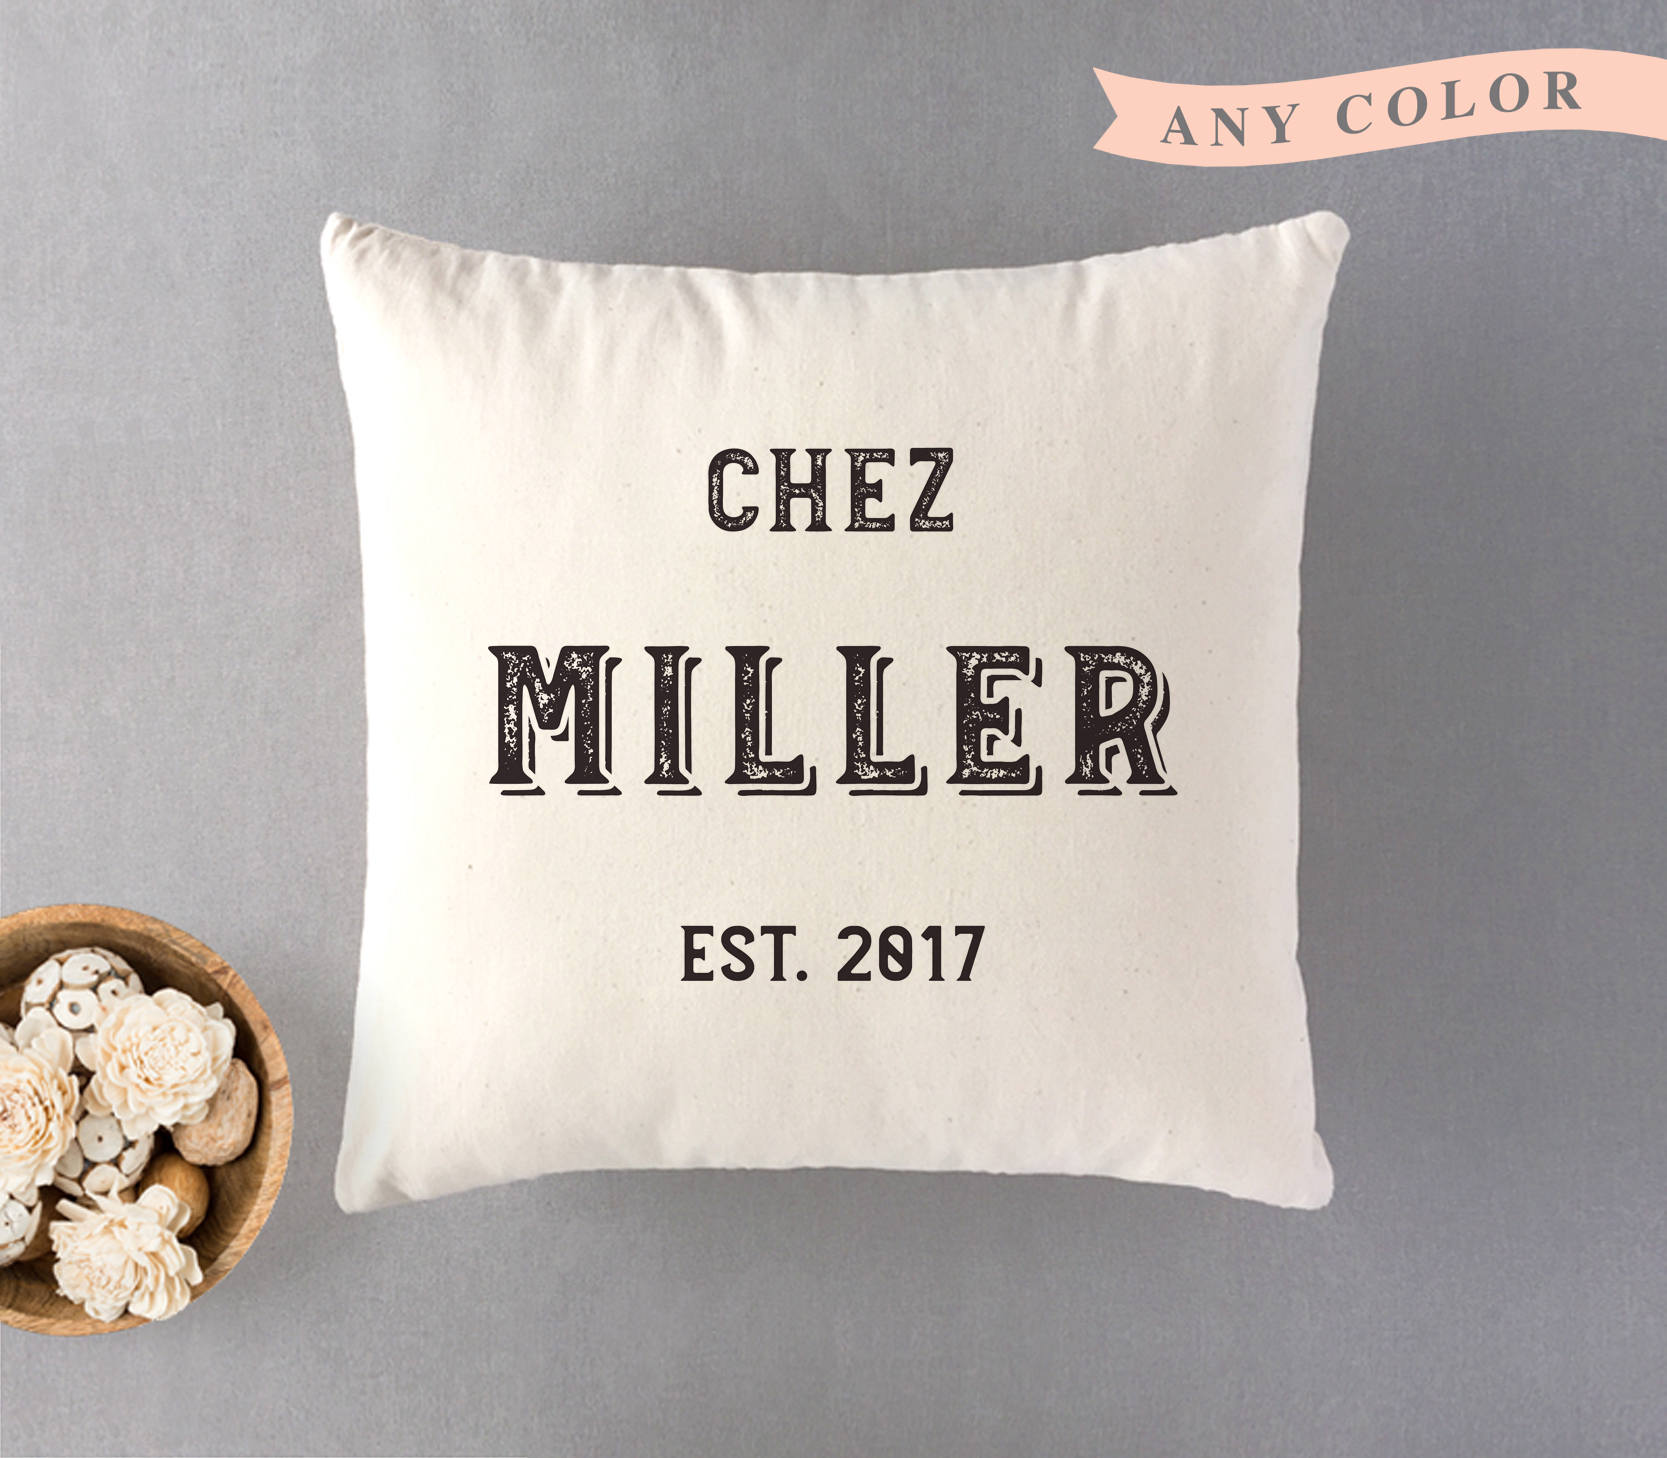 Wedding Gifts For Relatives: Personalized Family Pillow Wedding Gift For Couple Wedding